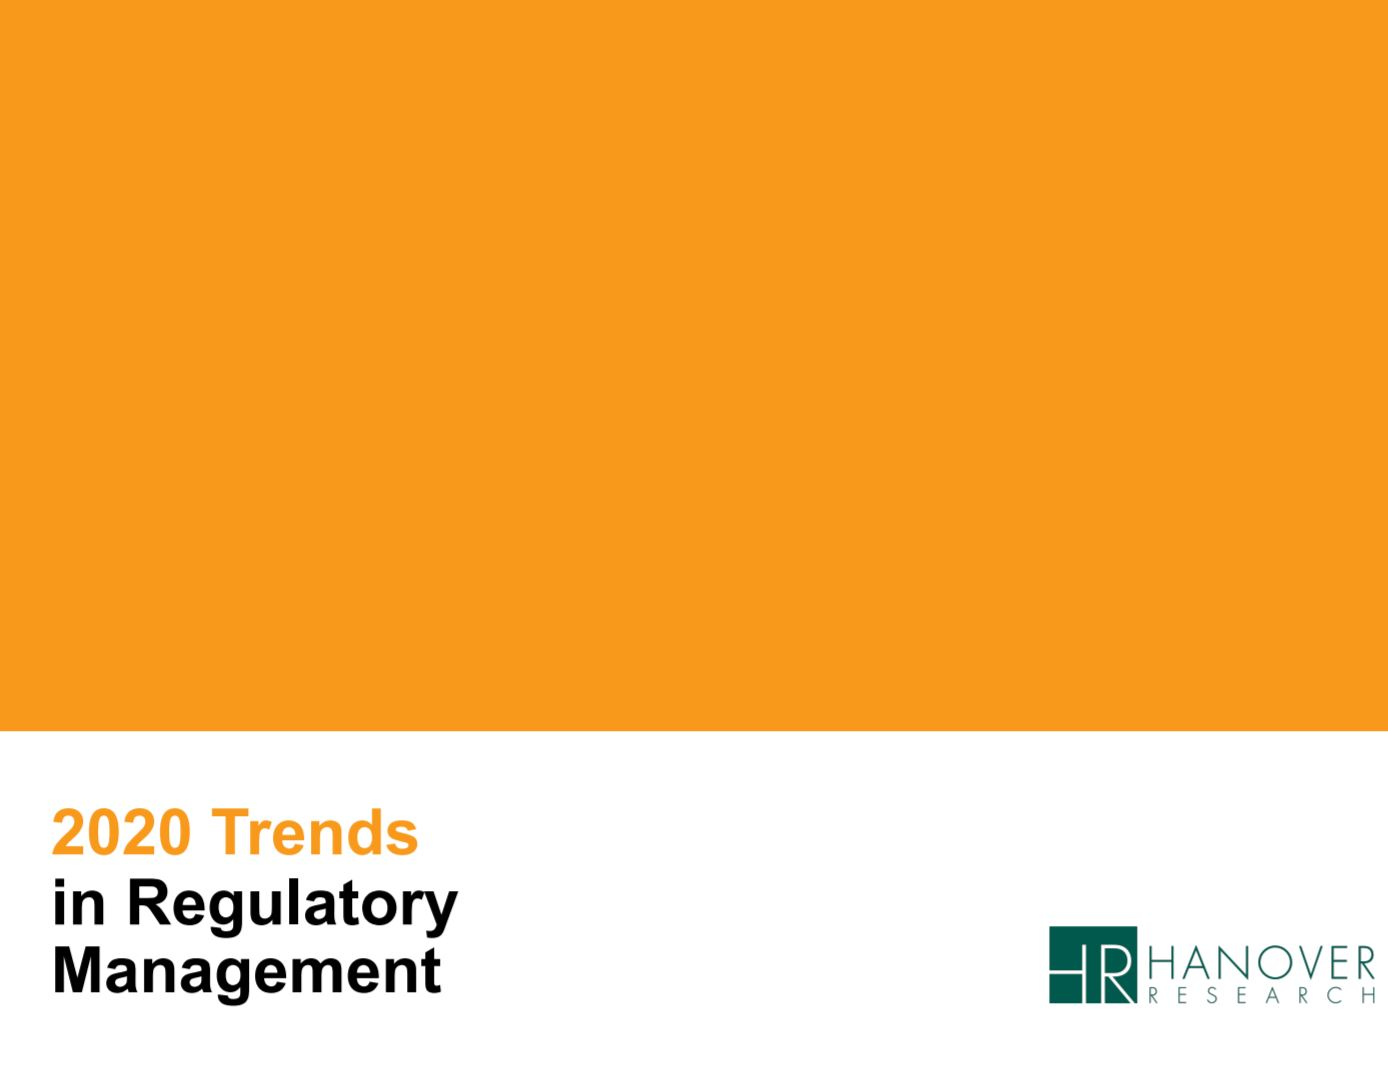 Hanover Research: 2020 Trends in Regulatory Management